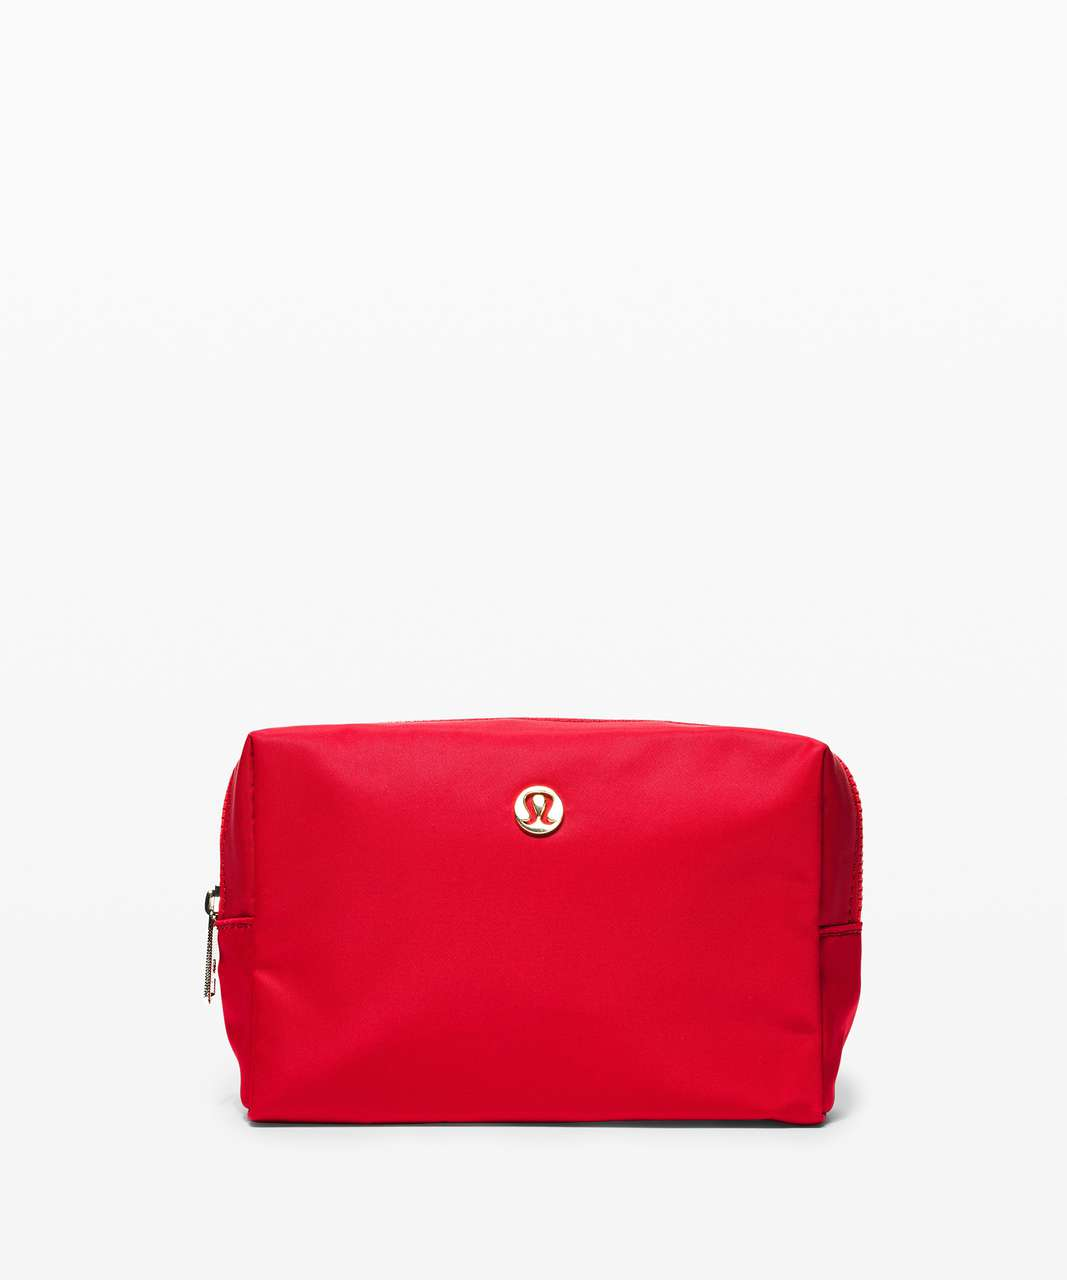 Lululemon All Your Small Things Pouch Mini 2L *Lunar New Year - Dark Red